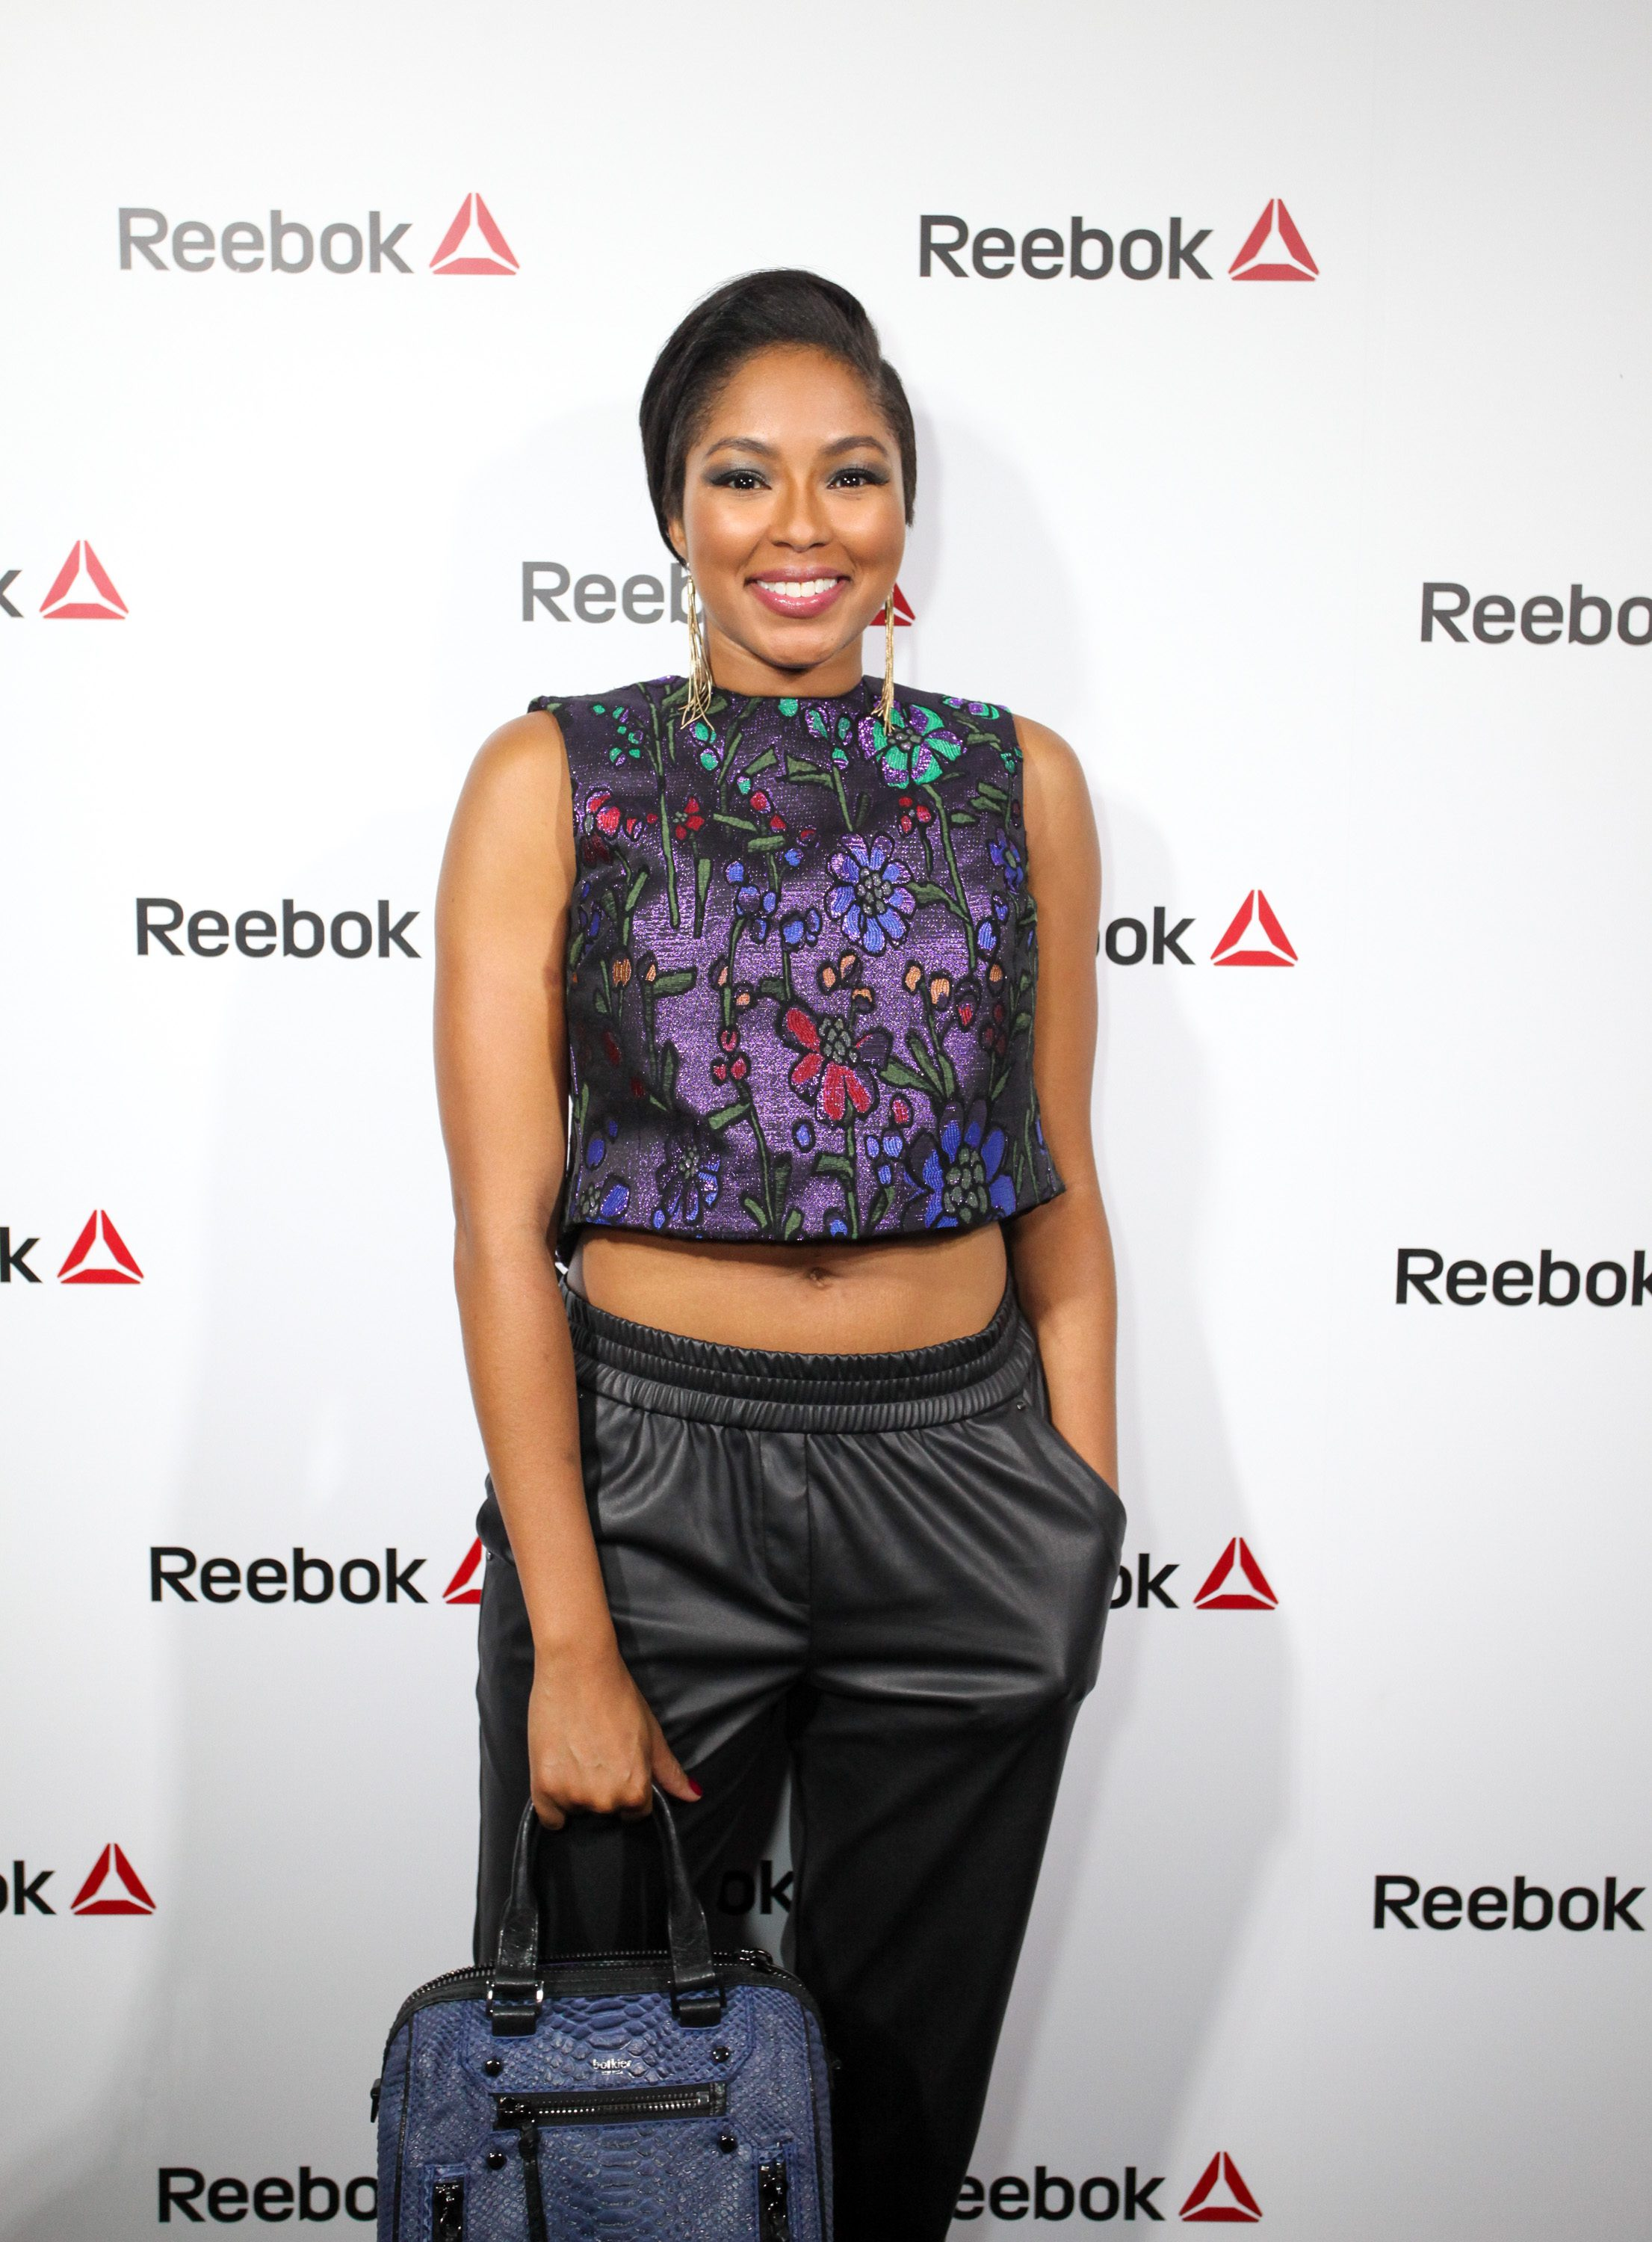 NEW YORK, NY - SEPTEMBER 16: Alicia Quarles attends The Reebok #girlswithgrit showcase at Marquee on September 16, 2015 in New York City. (Photo by Donald Bowers/Getty Images for Reebok)